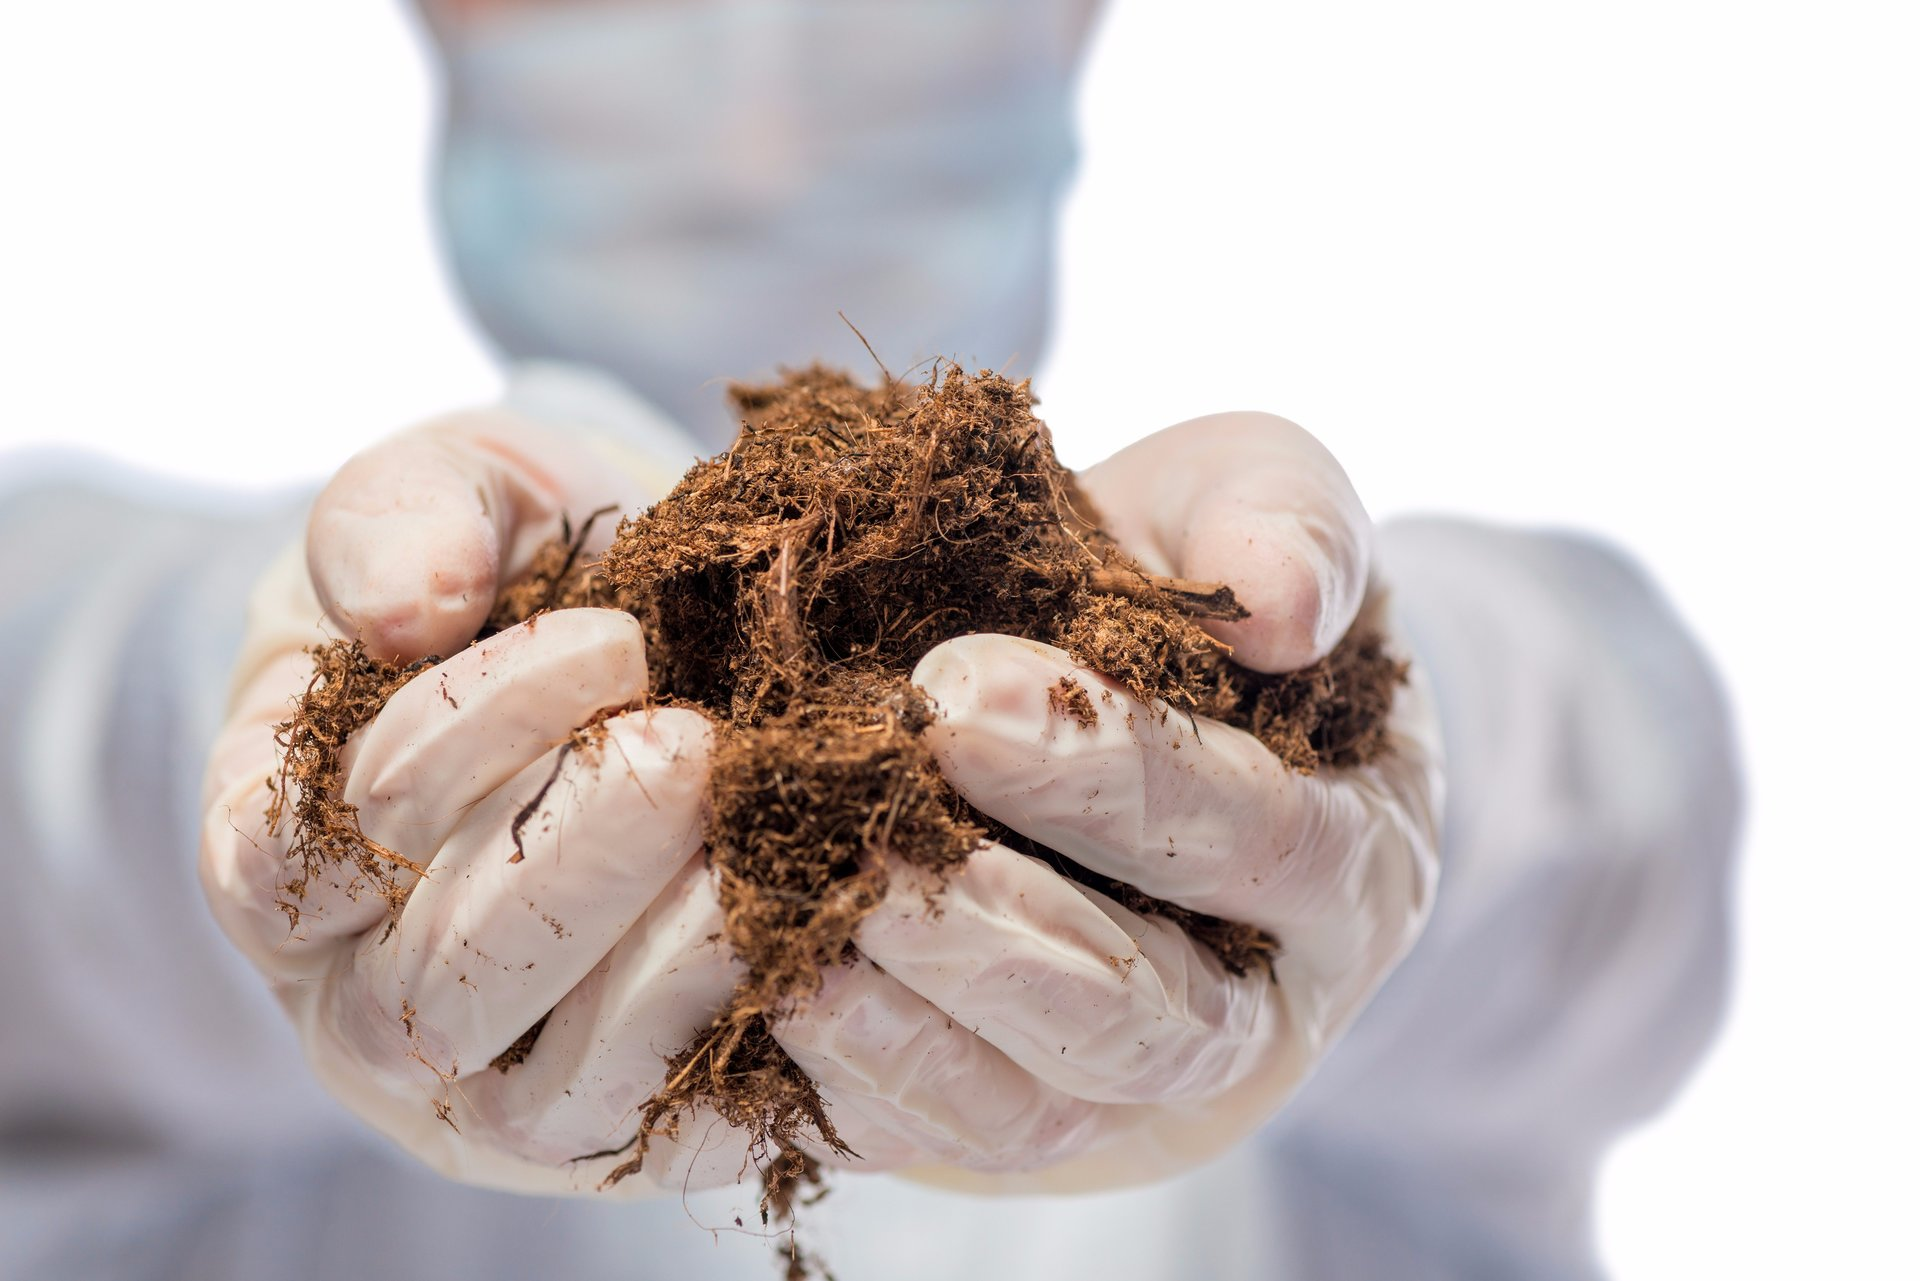 Diseases That May Be Spread If You Don't Manage Your Manure Spreaders